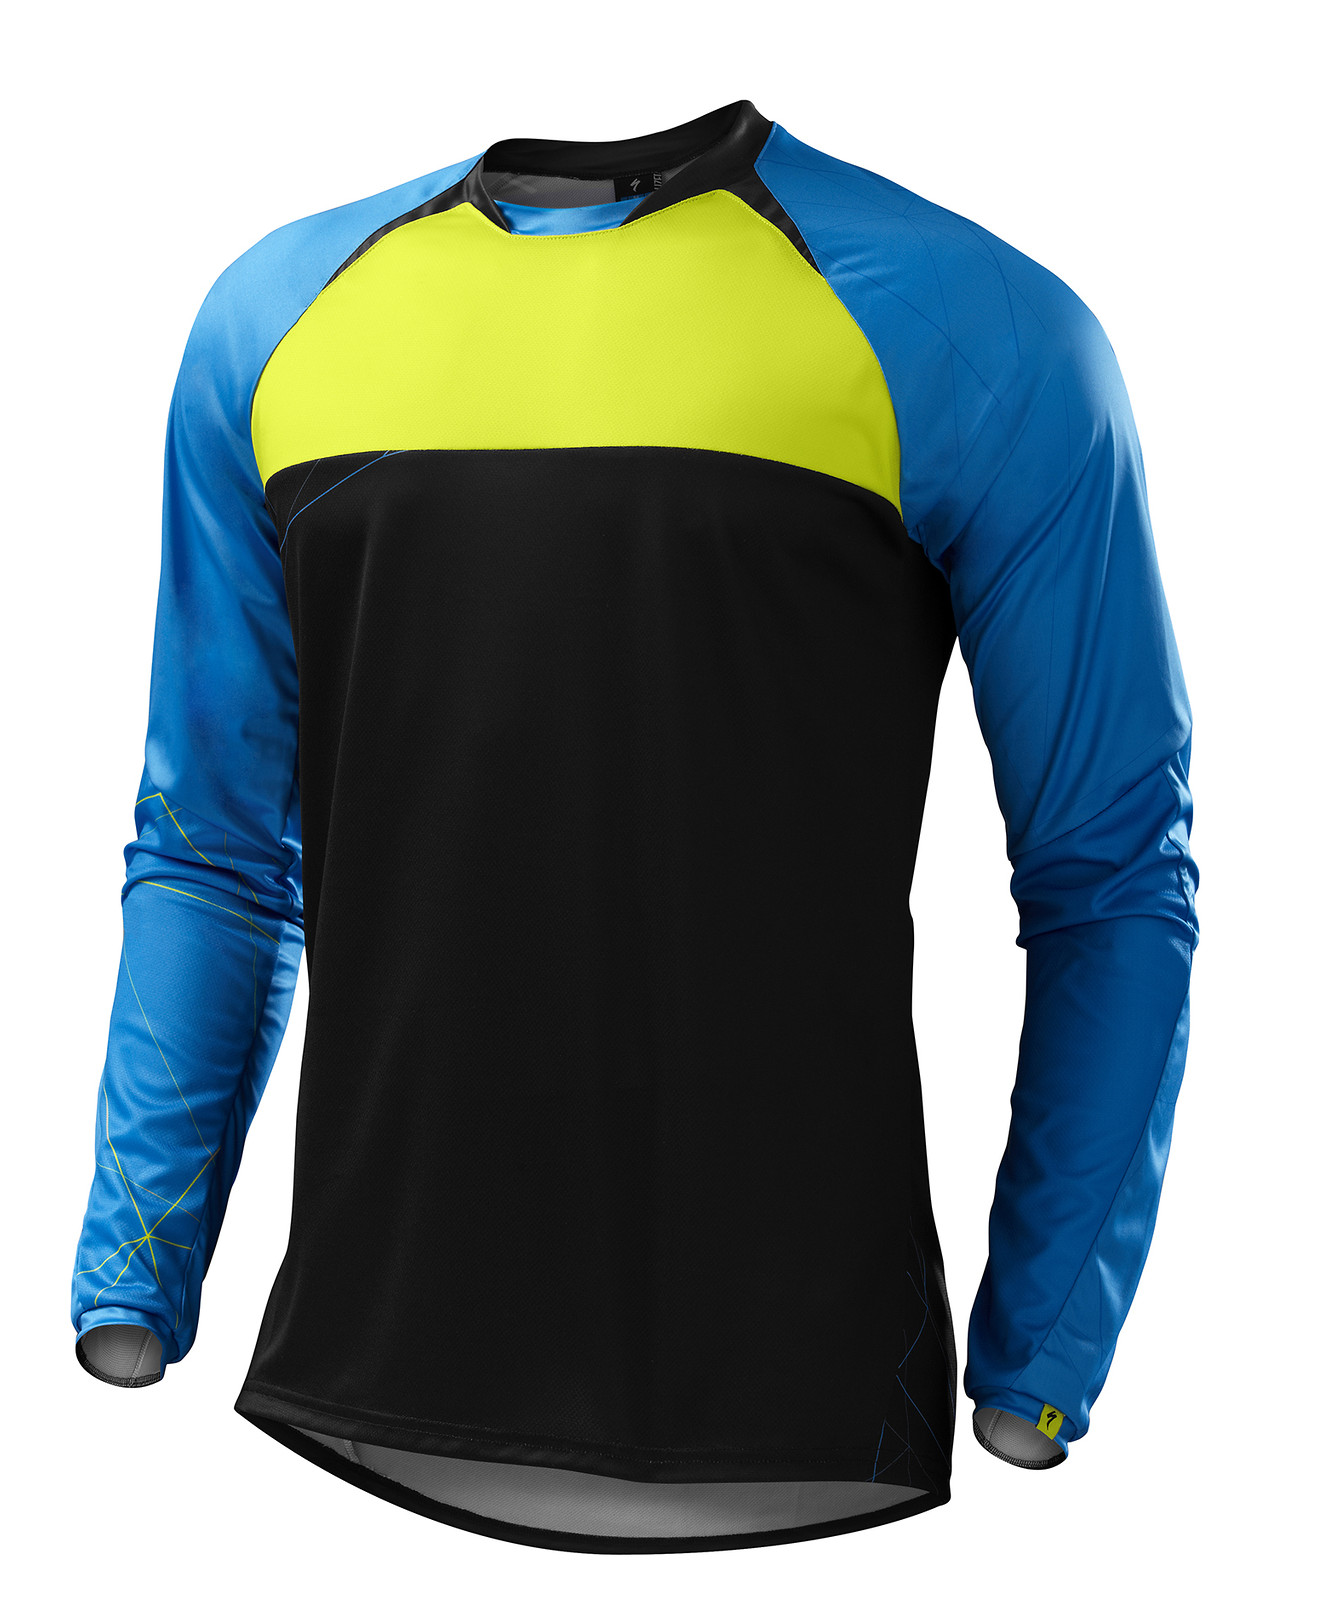 Specialized Demo Pro Long Sleeve Jersey Reviews